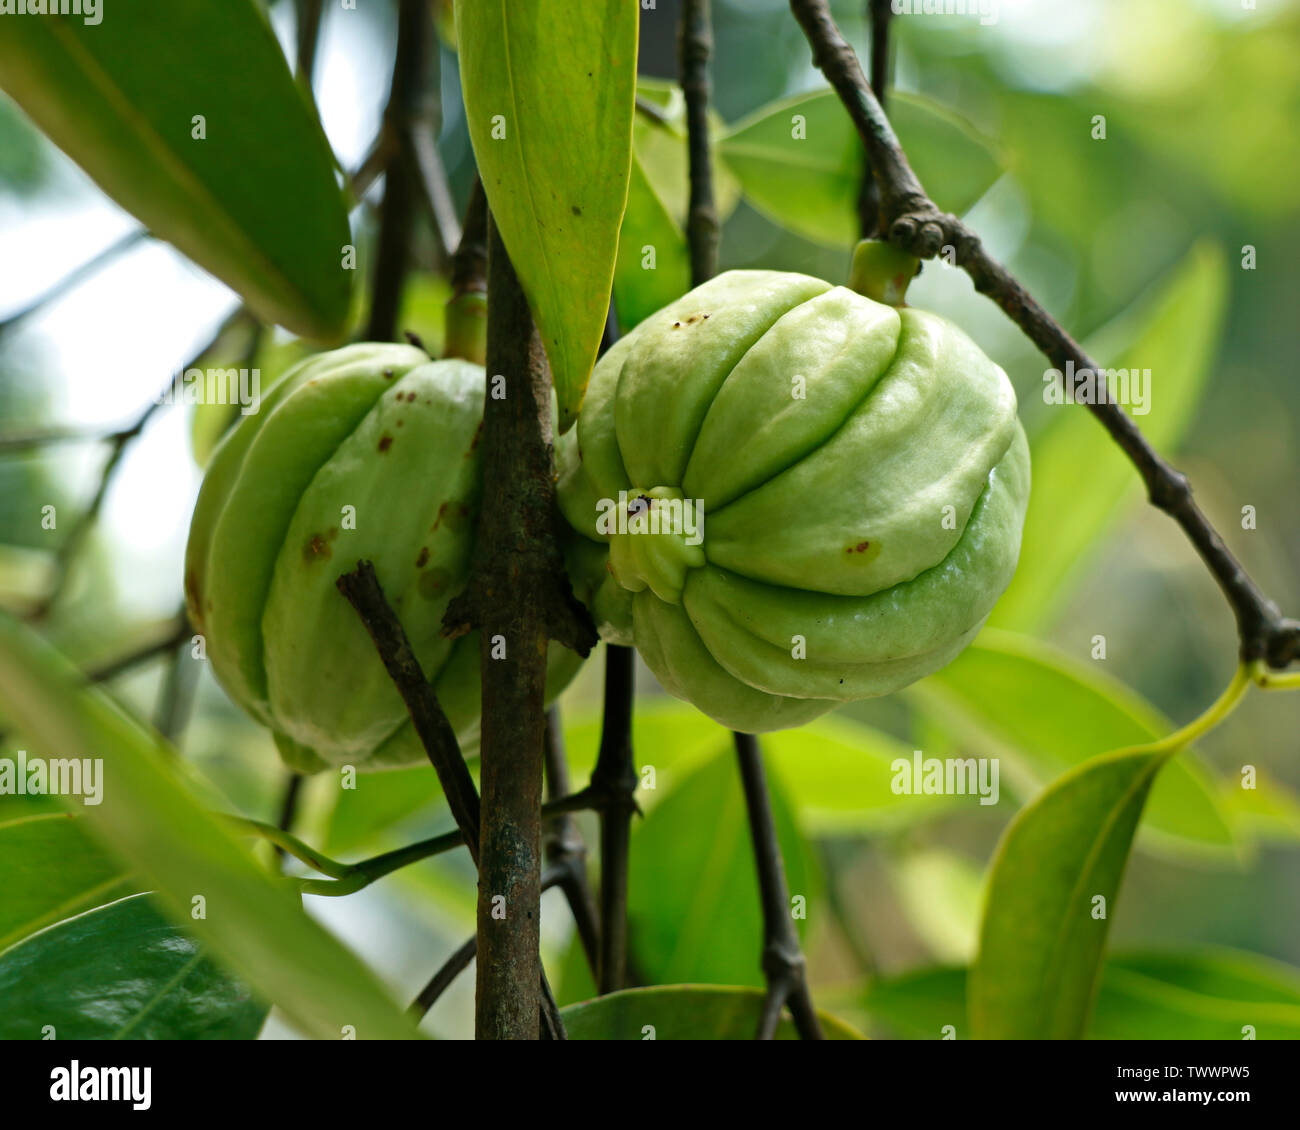 Garcinia Gummi Gutta Is A Tropical Species Of Garcinia Native To Indonesia Common Names Include Garcinia Cambogia As Well As Brindleberry Malabar T Stock Photo Alamy